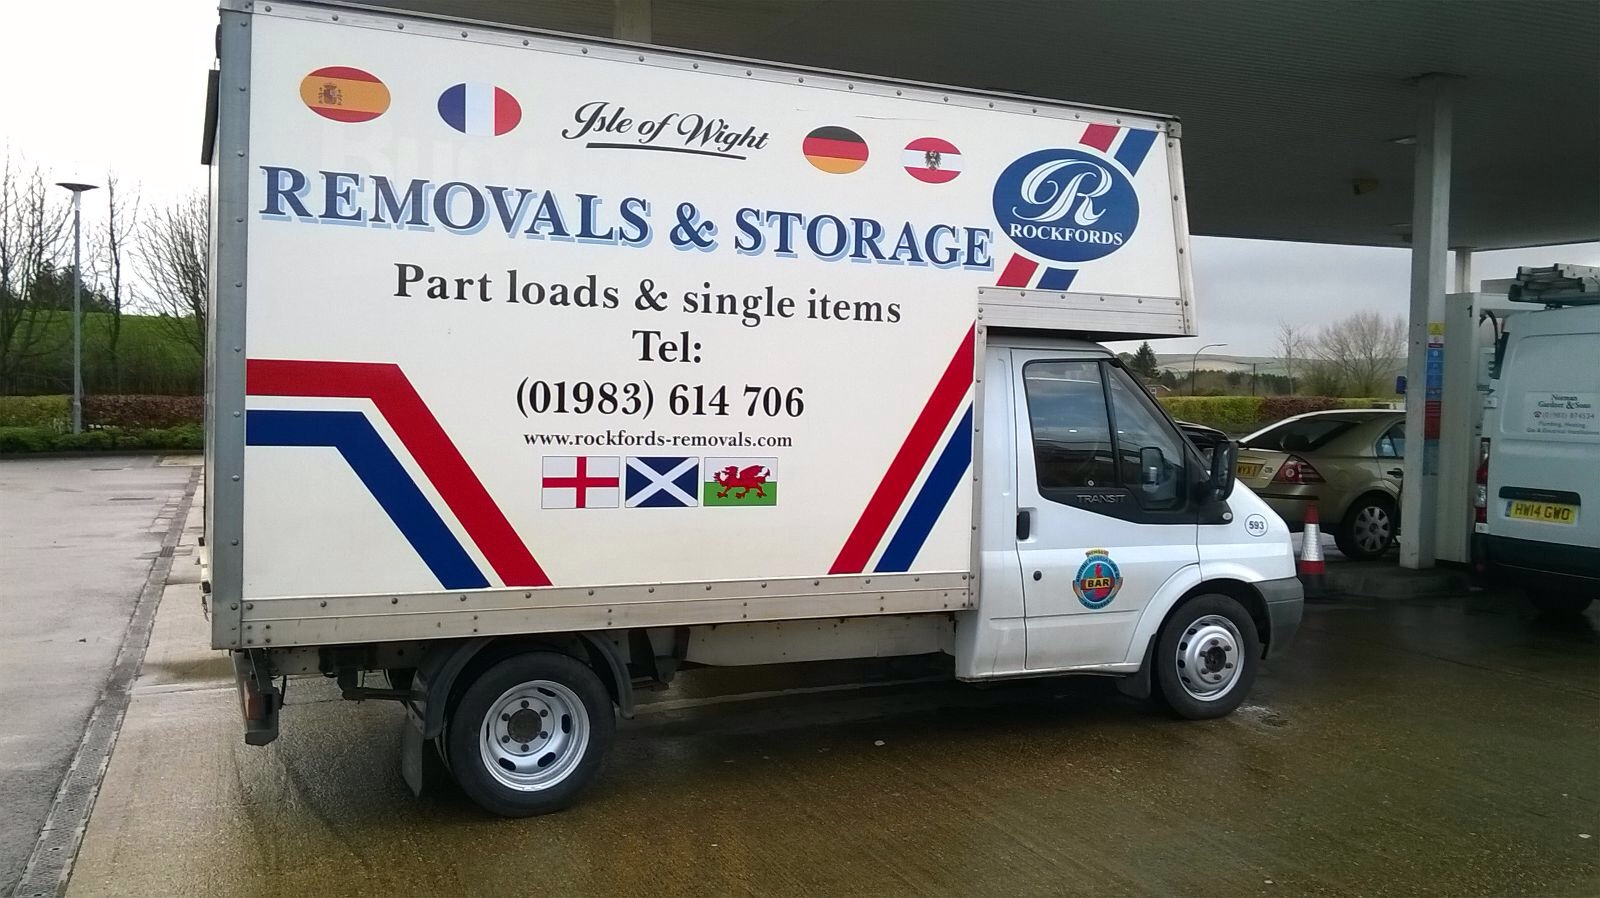 isle of wight removals part loads and returns with rockfords removals on the isle of wight isle. Black Bedroom Furniture Sets. Home Design Ideas